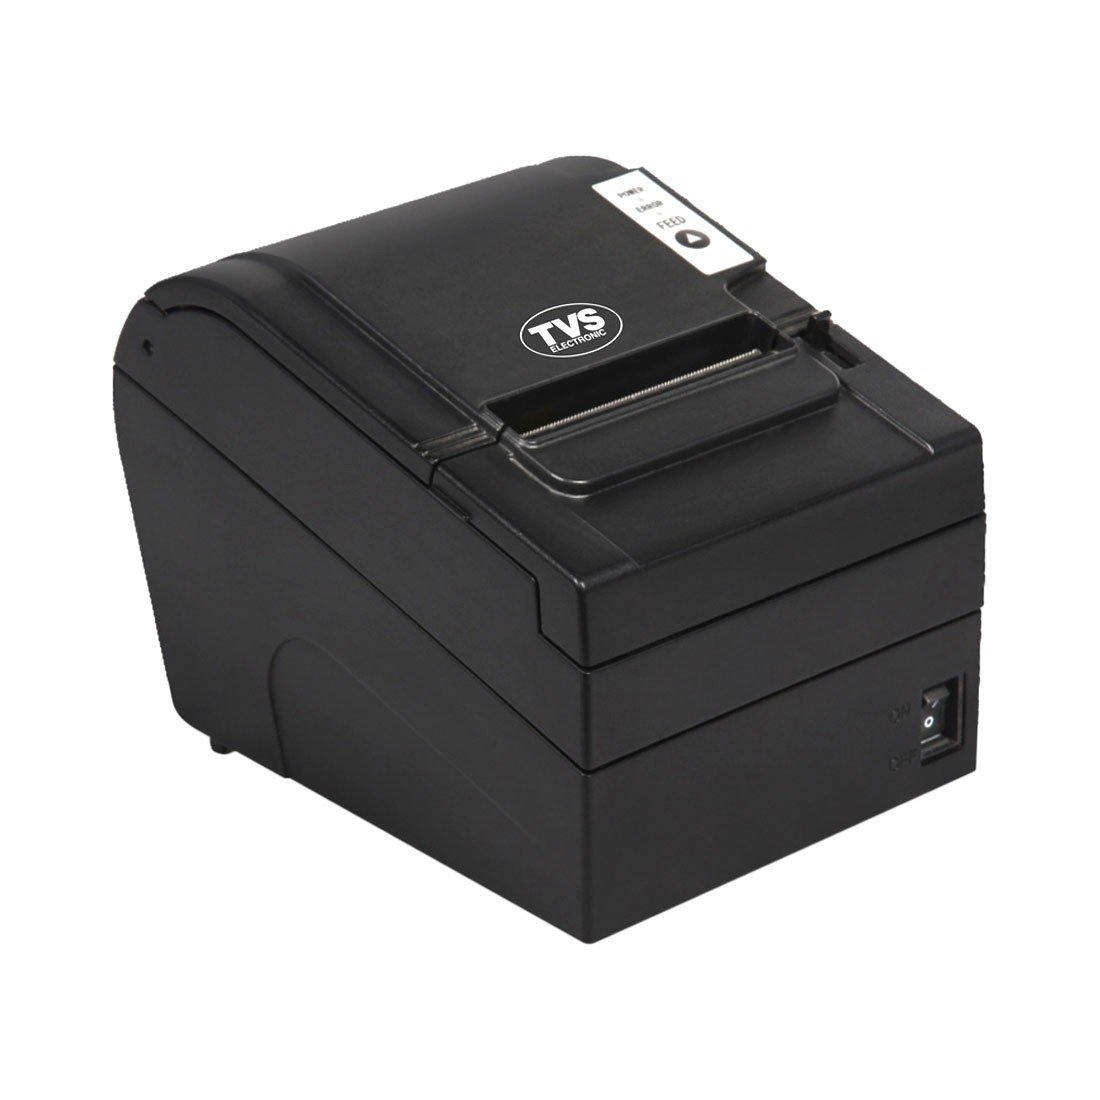 TVS RP 3150 Star Thermal Billing Receipt Printer